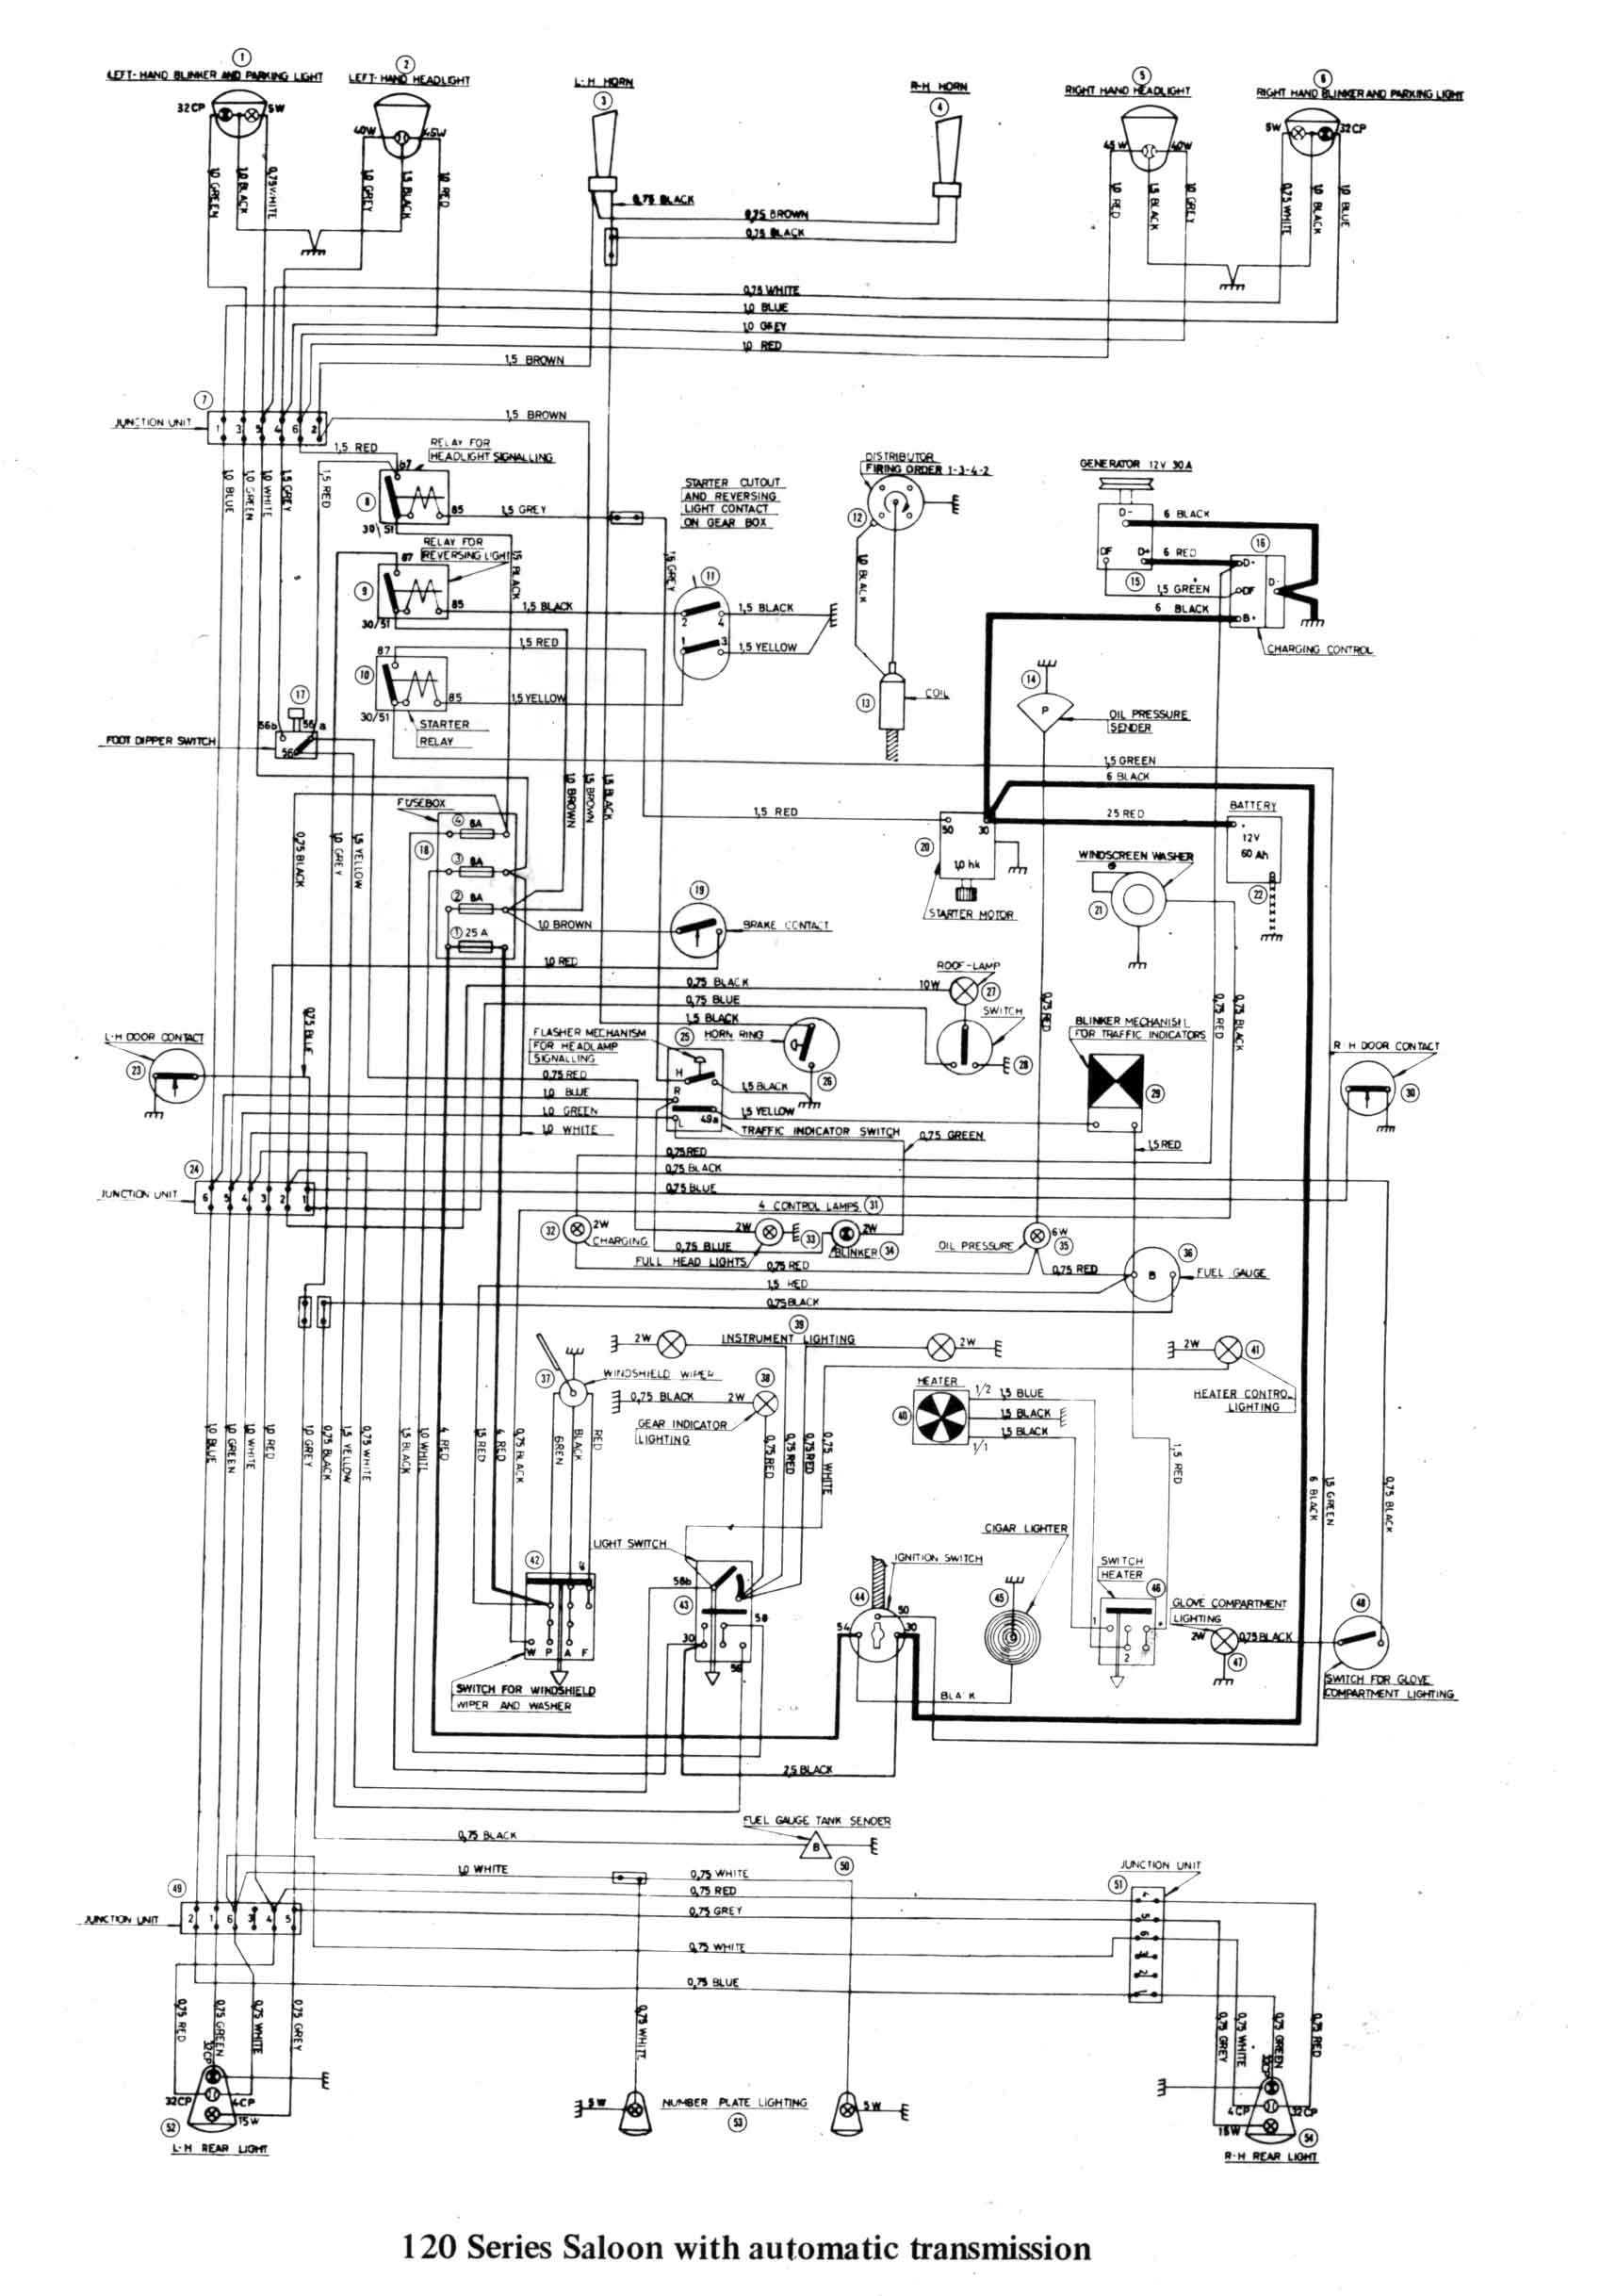 1998 Mazda Mpv Engine Diagram Volvo S70 Wiring Turbo: 1998 Volvo S90 Fuse  Box At